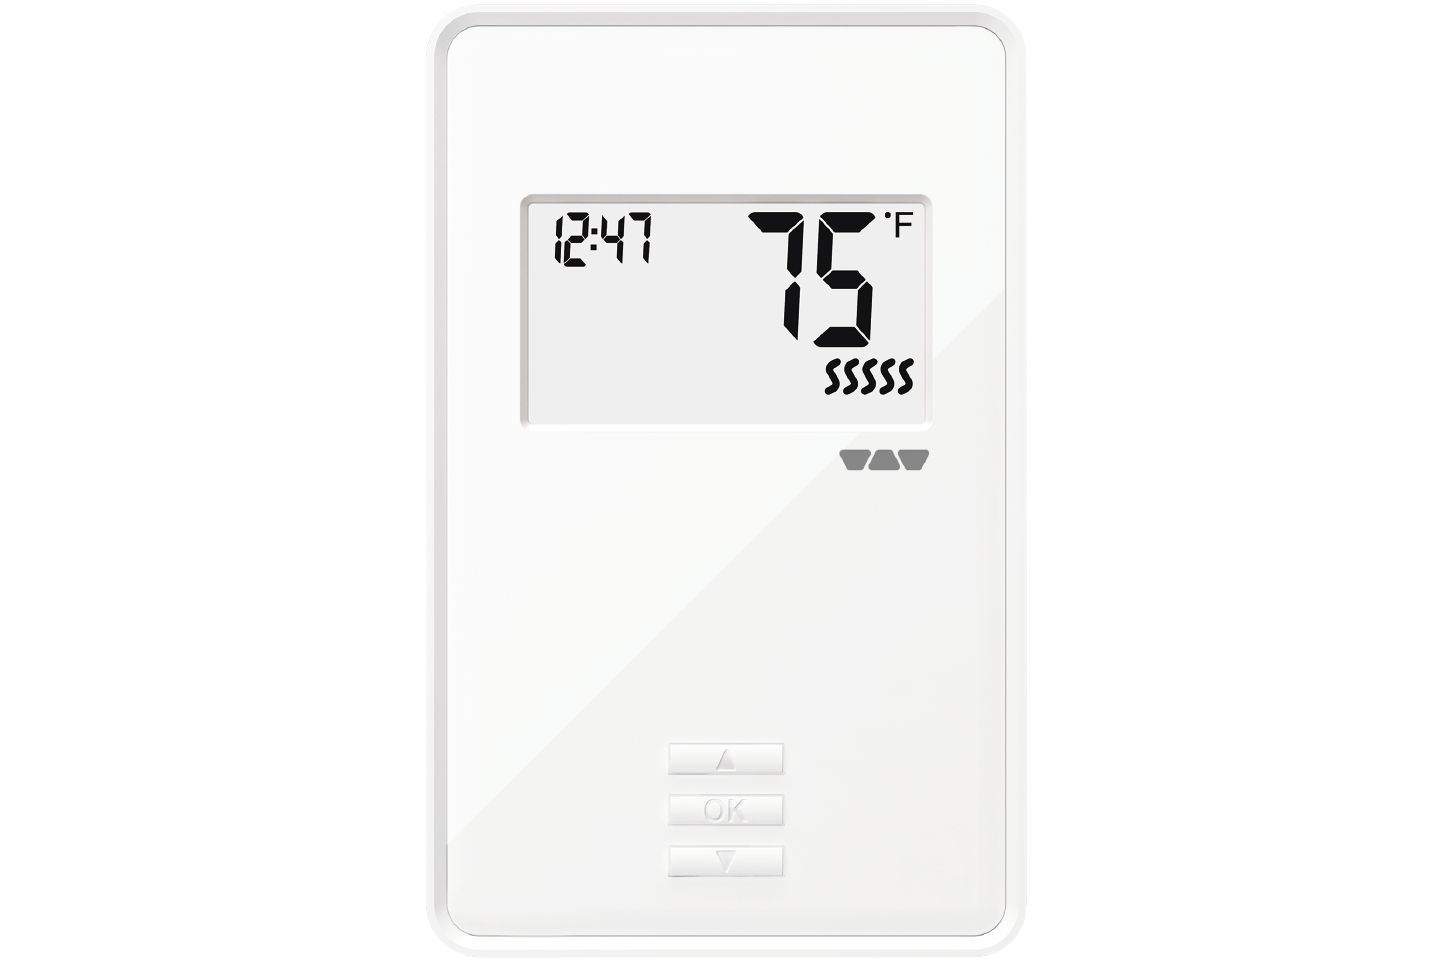 Ditra Heat E R Thermostat User Guide